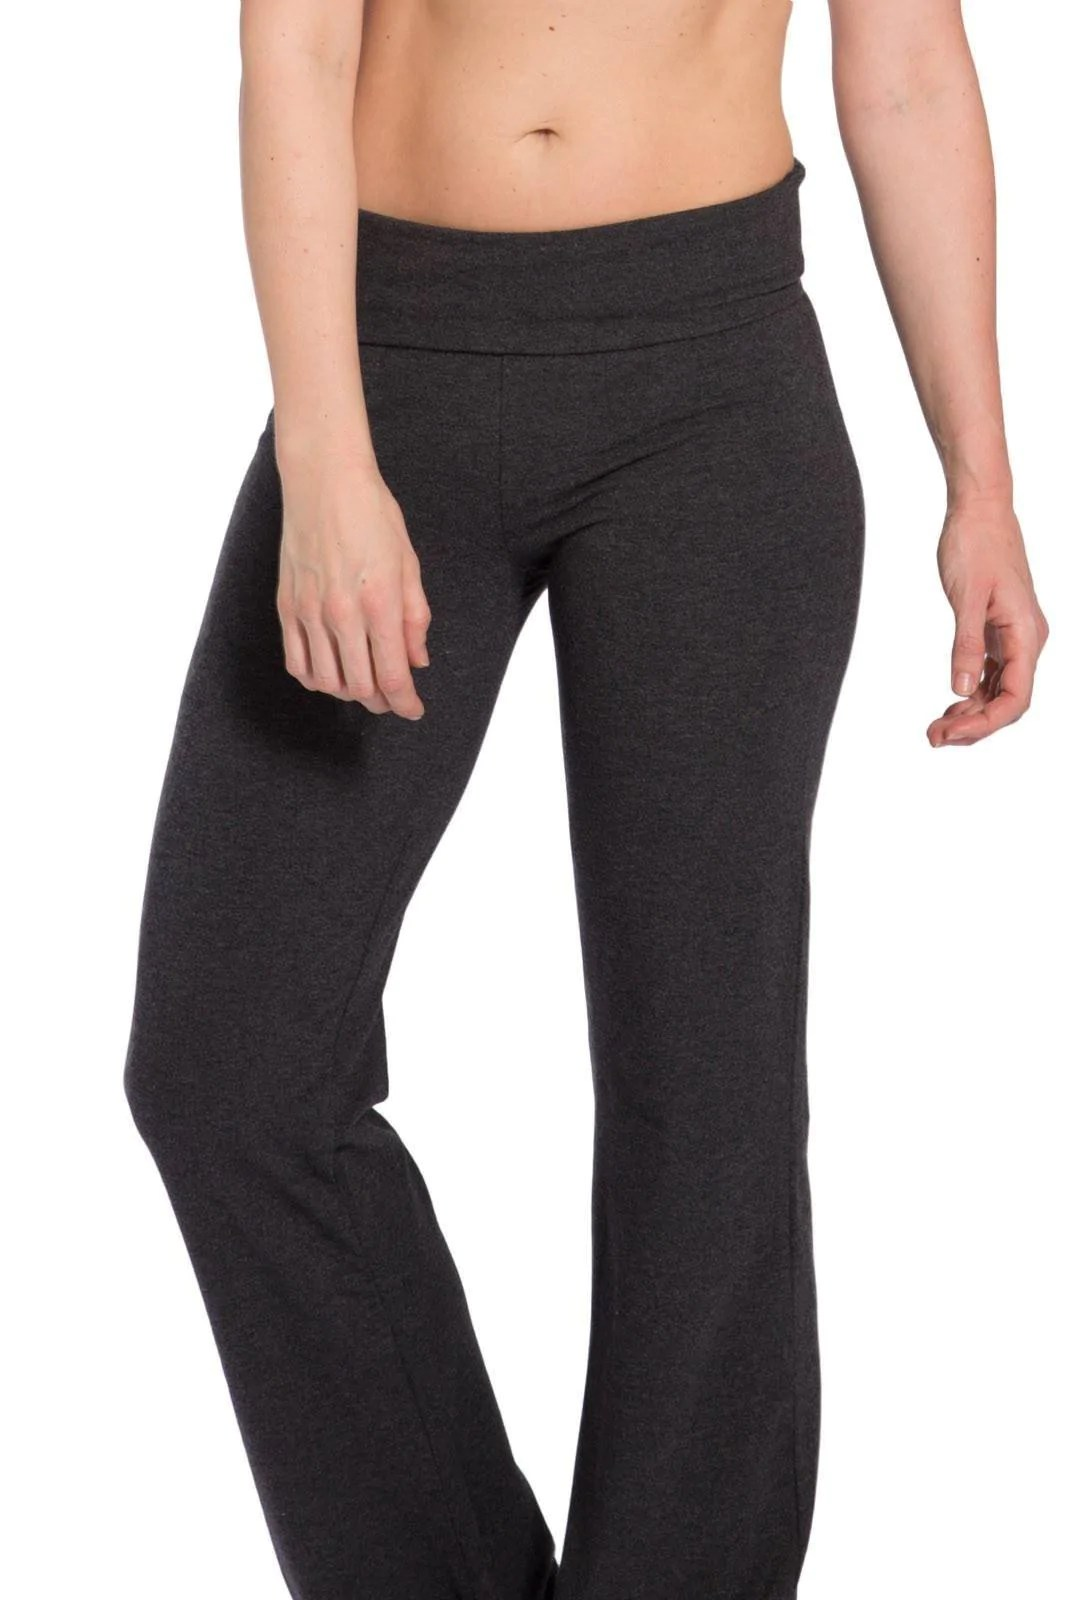 b348ac78bf Top 10 Best Foldover Yoga Pants In 2019 Reviews